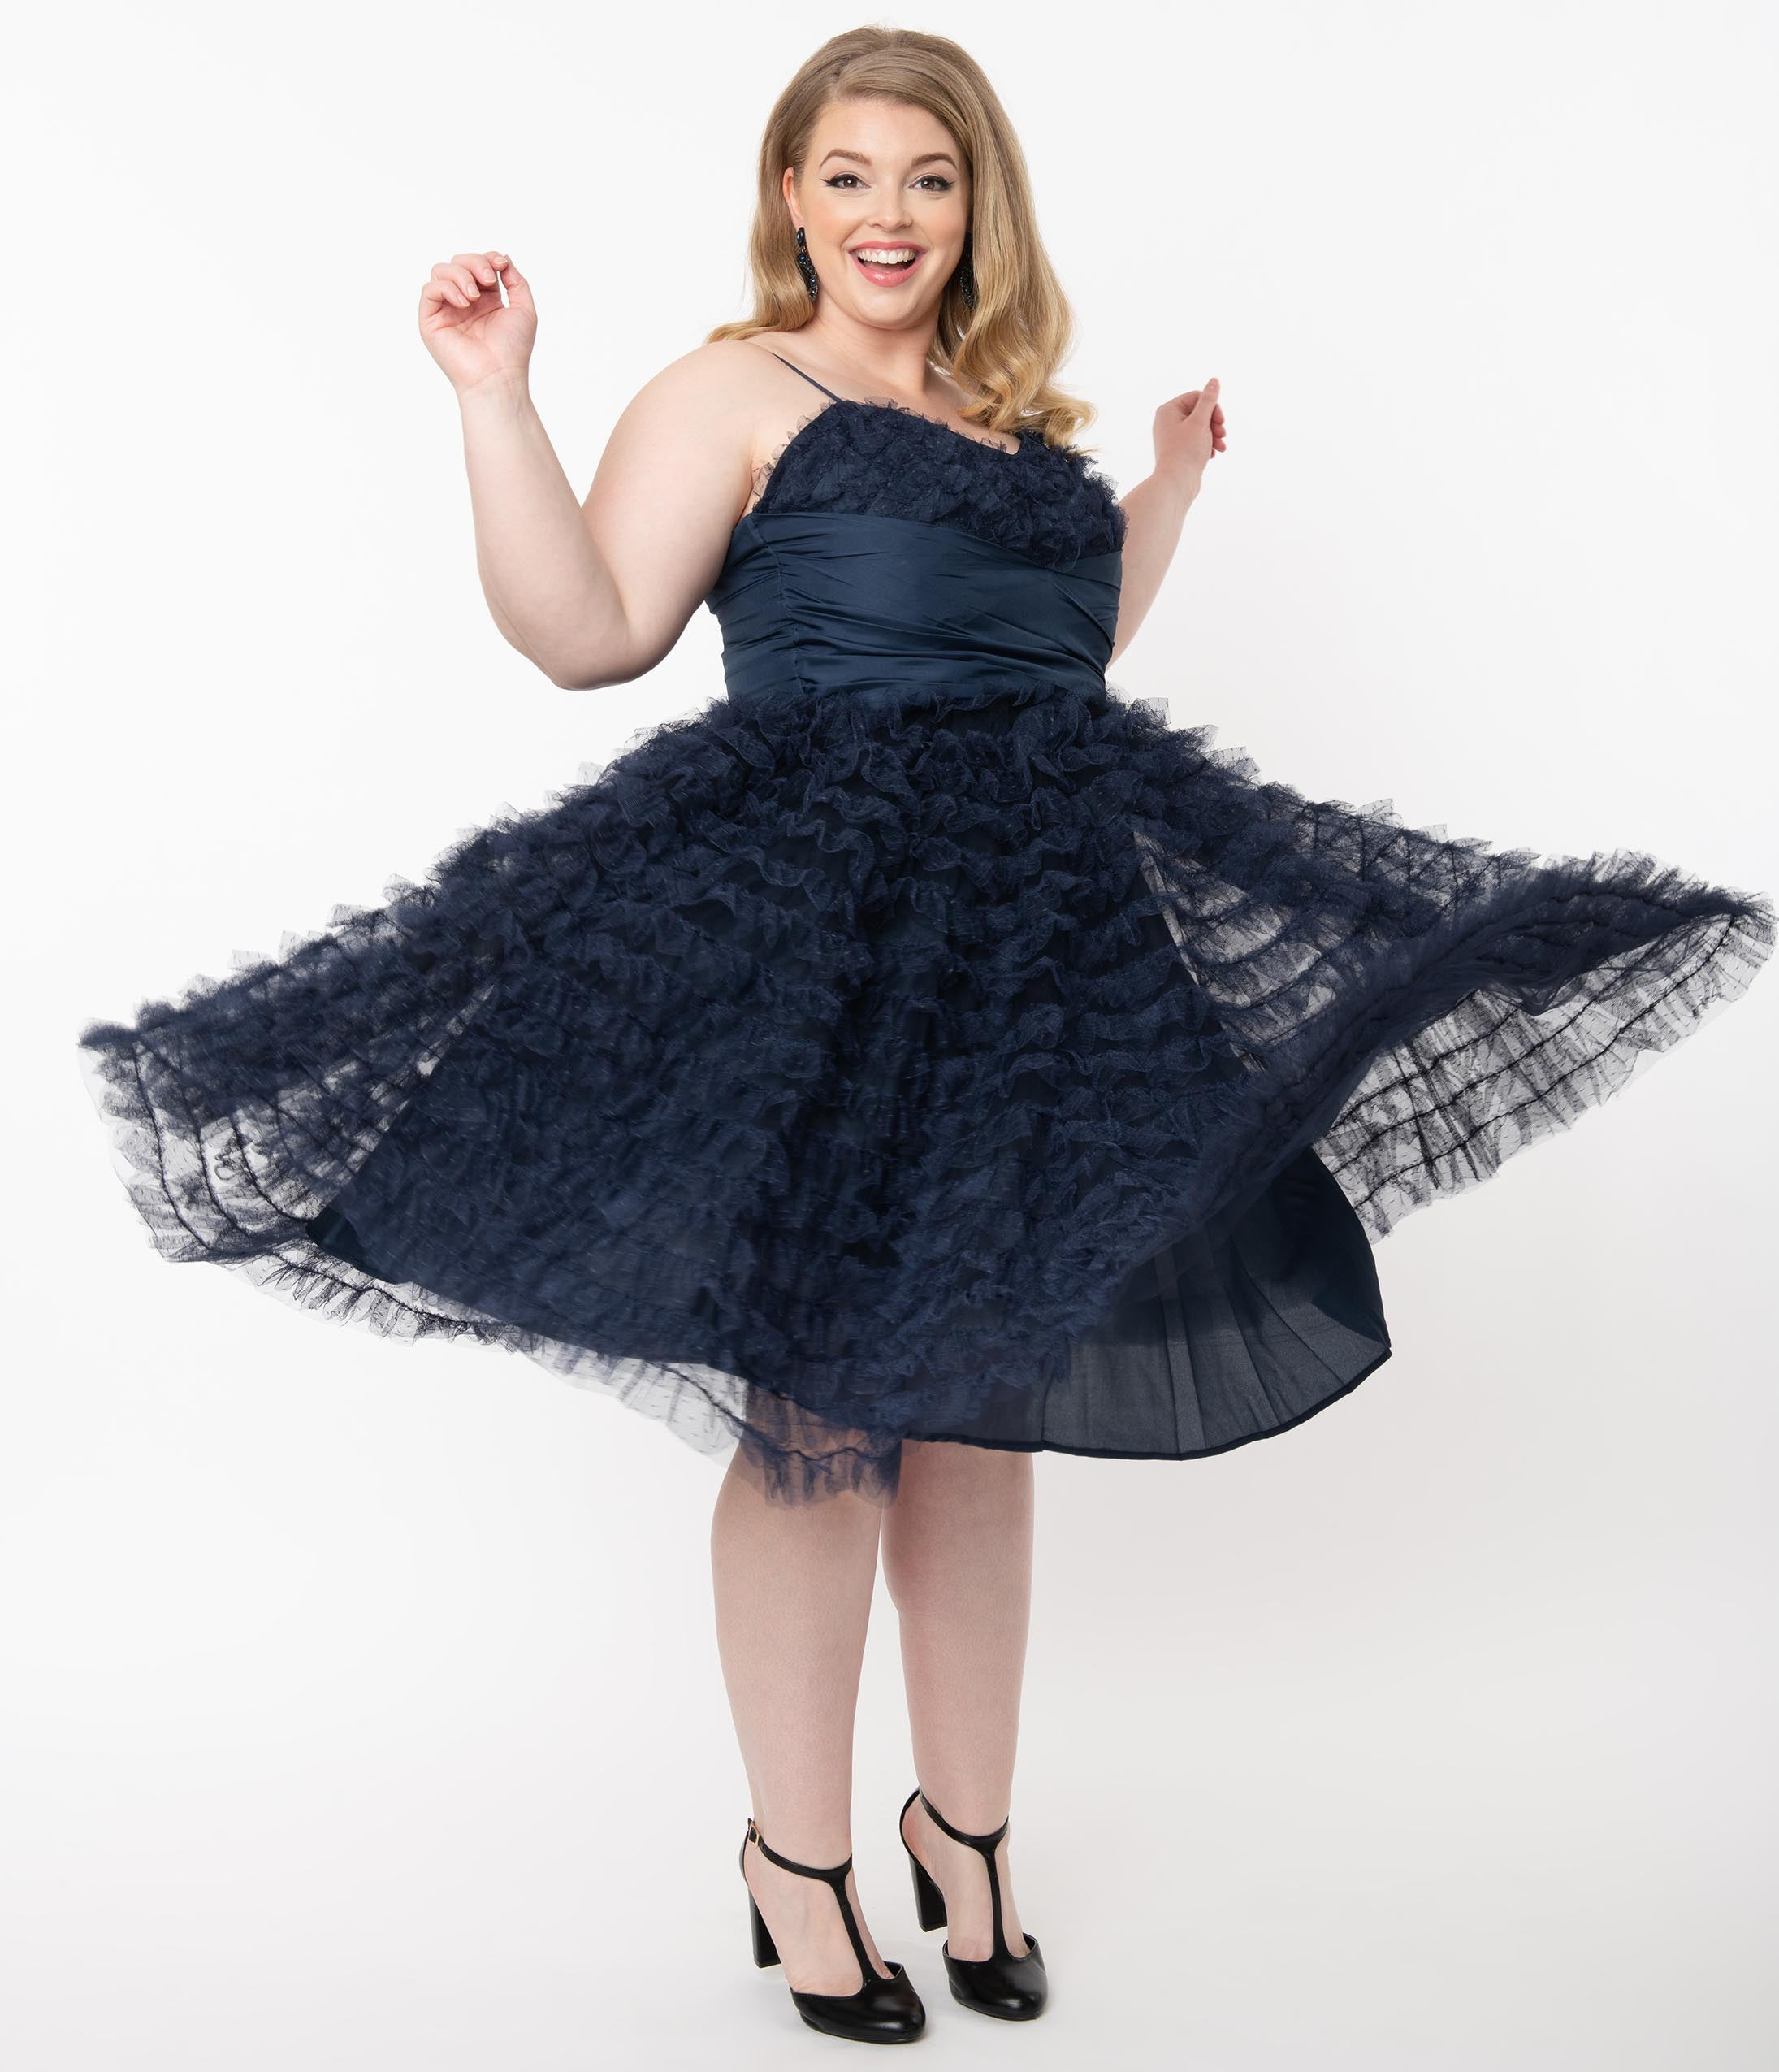 Vintage Prom Dresses, Homecoming Dress Unique Vintage Plus Size 1950S Navy Ruffled Tulle Cupcake Swing Dress $118.00 AT vintagedancer.com